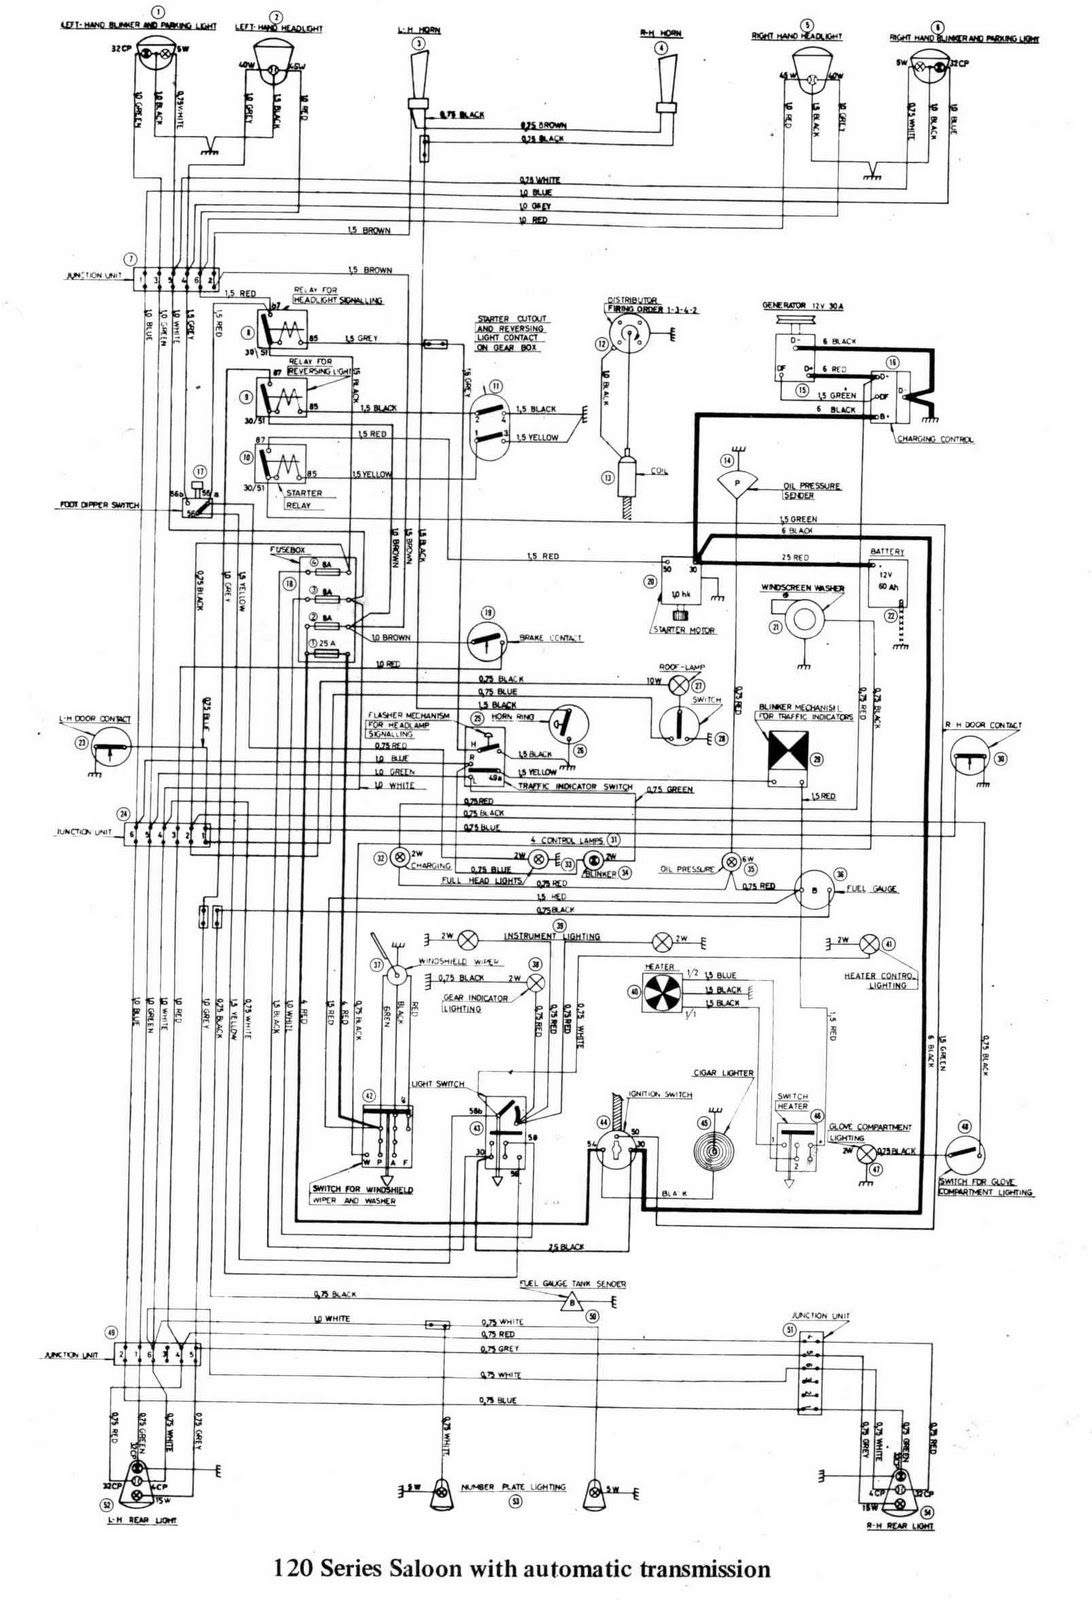 [SCHEMATICS_4UK]  ABEE Volvo V70 Radio Wiring Diagram | Wiring Library | 2007 Volvo S60 Engine Diagram |  | Wiring Library